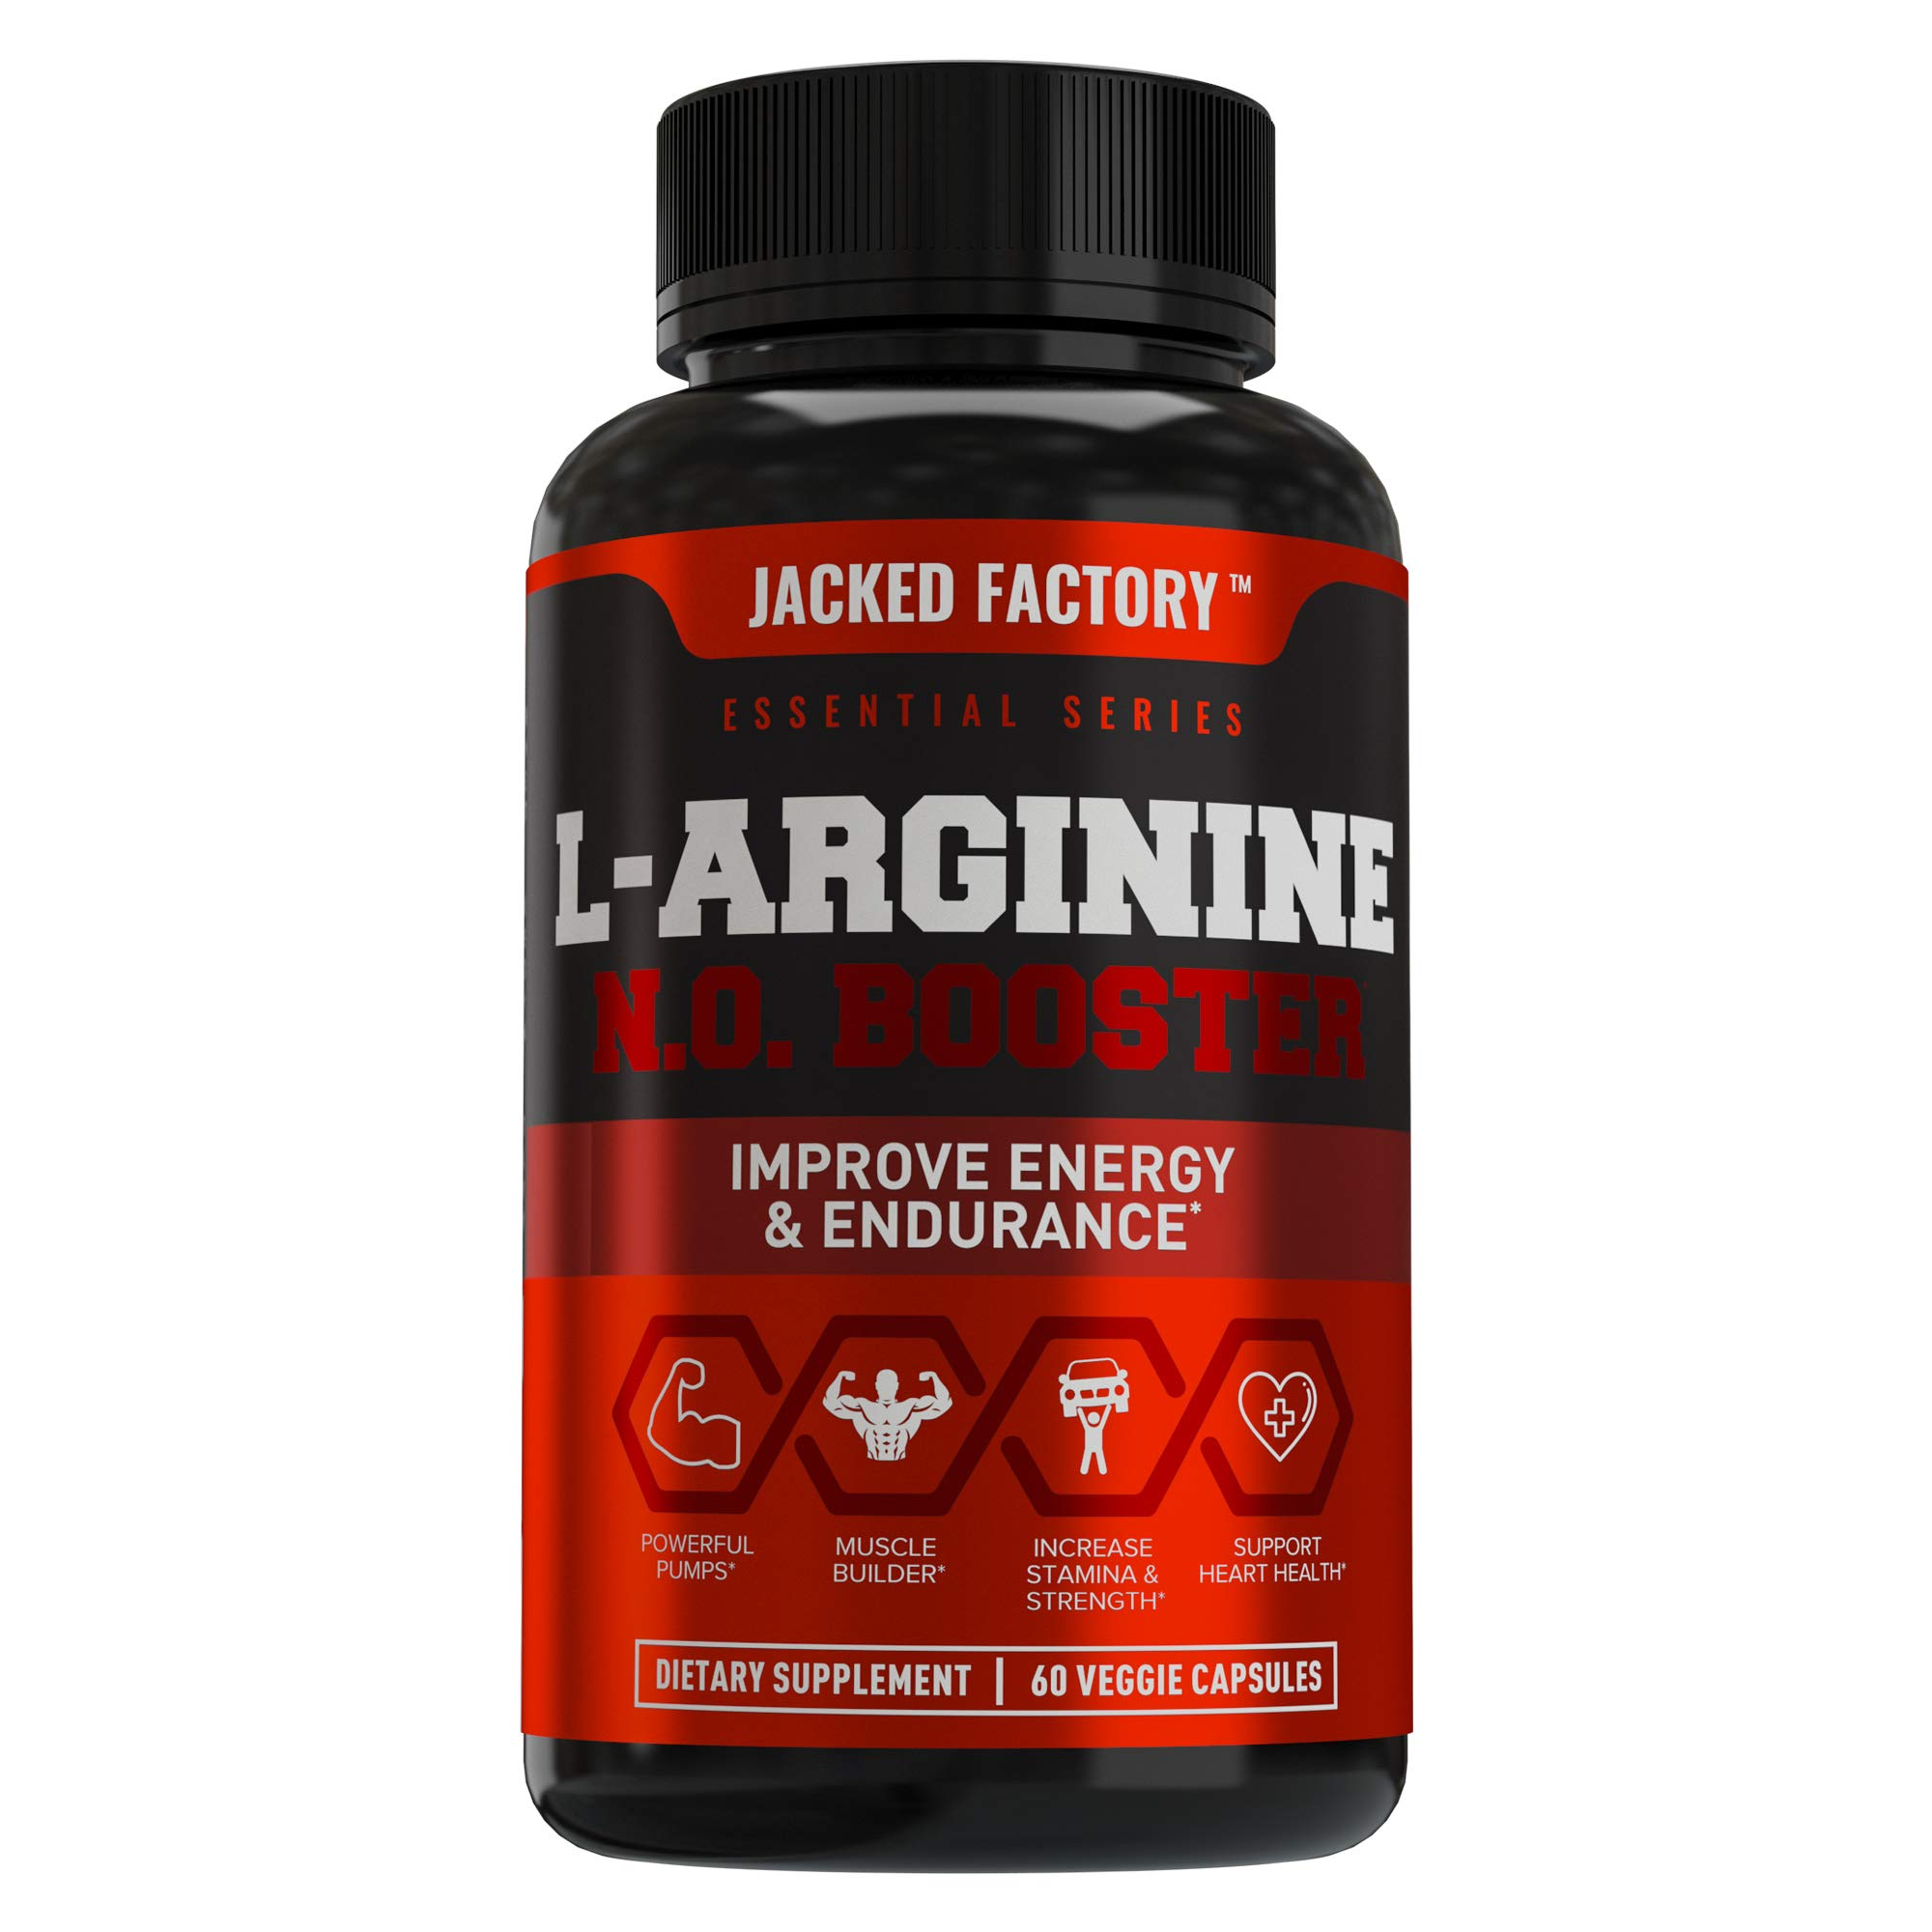 L Arginine 1500mg Patented Nitrosigine - Extra Strength L-Arginine Nitric Oxide (NO) Booster Pre Workout Supplement for Muscle Growth, Pumps, Vascularity, Energy - 60 Veggie Pills by Jacked Factory